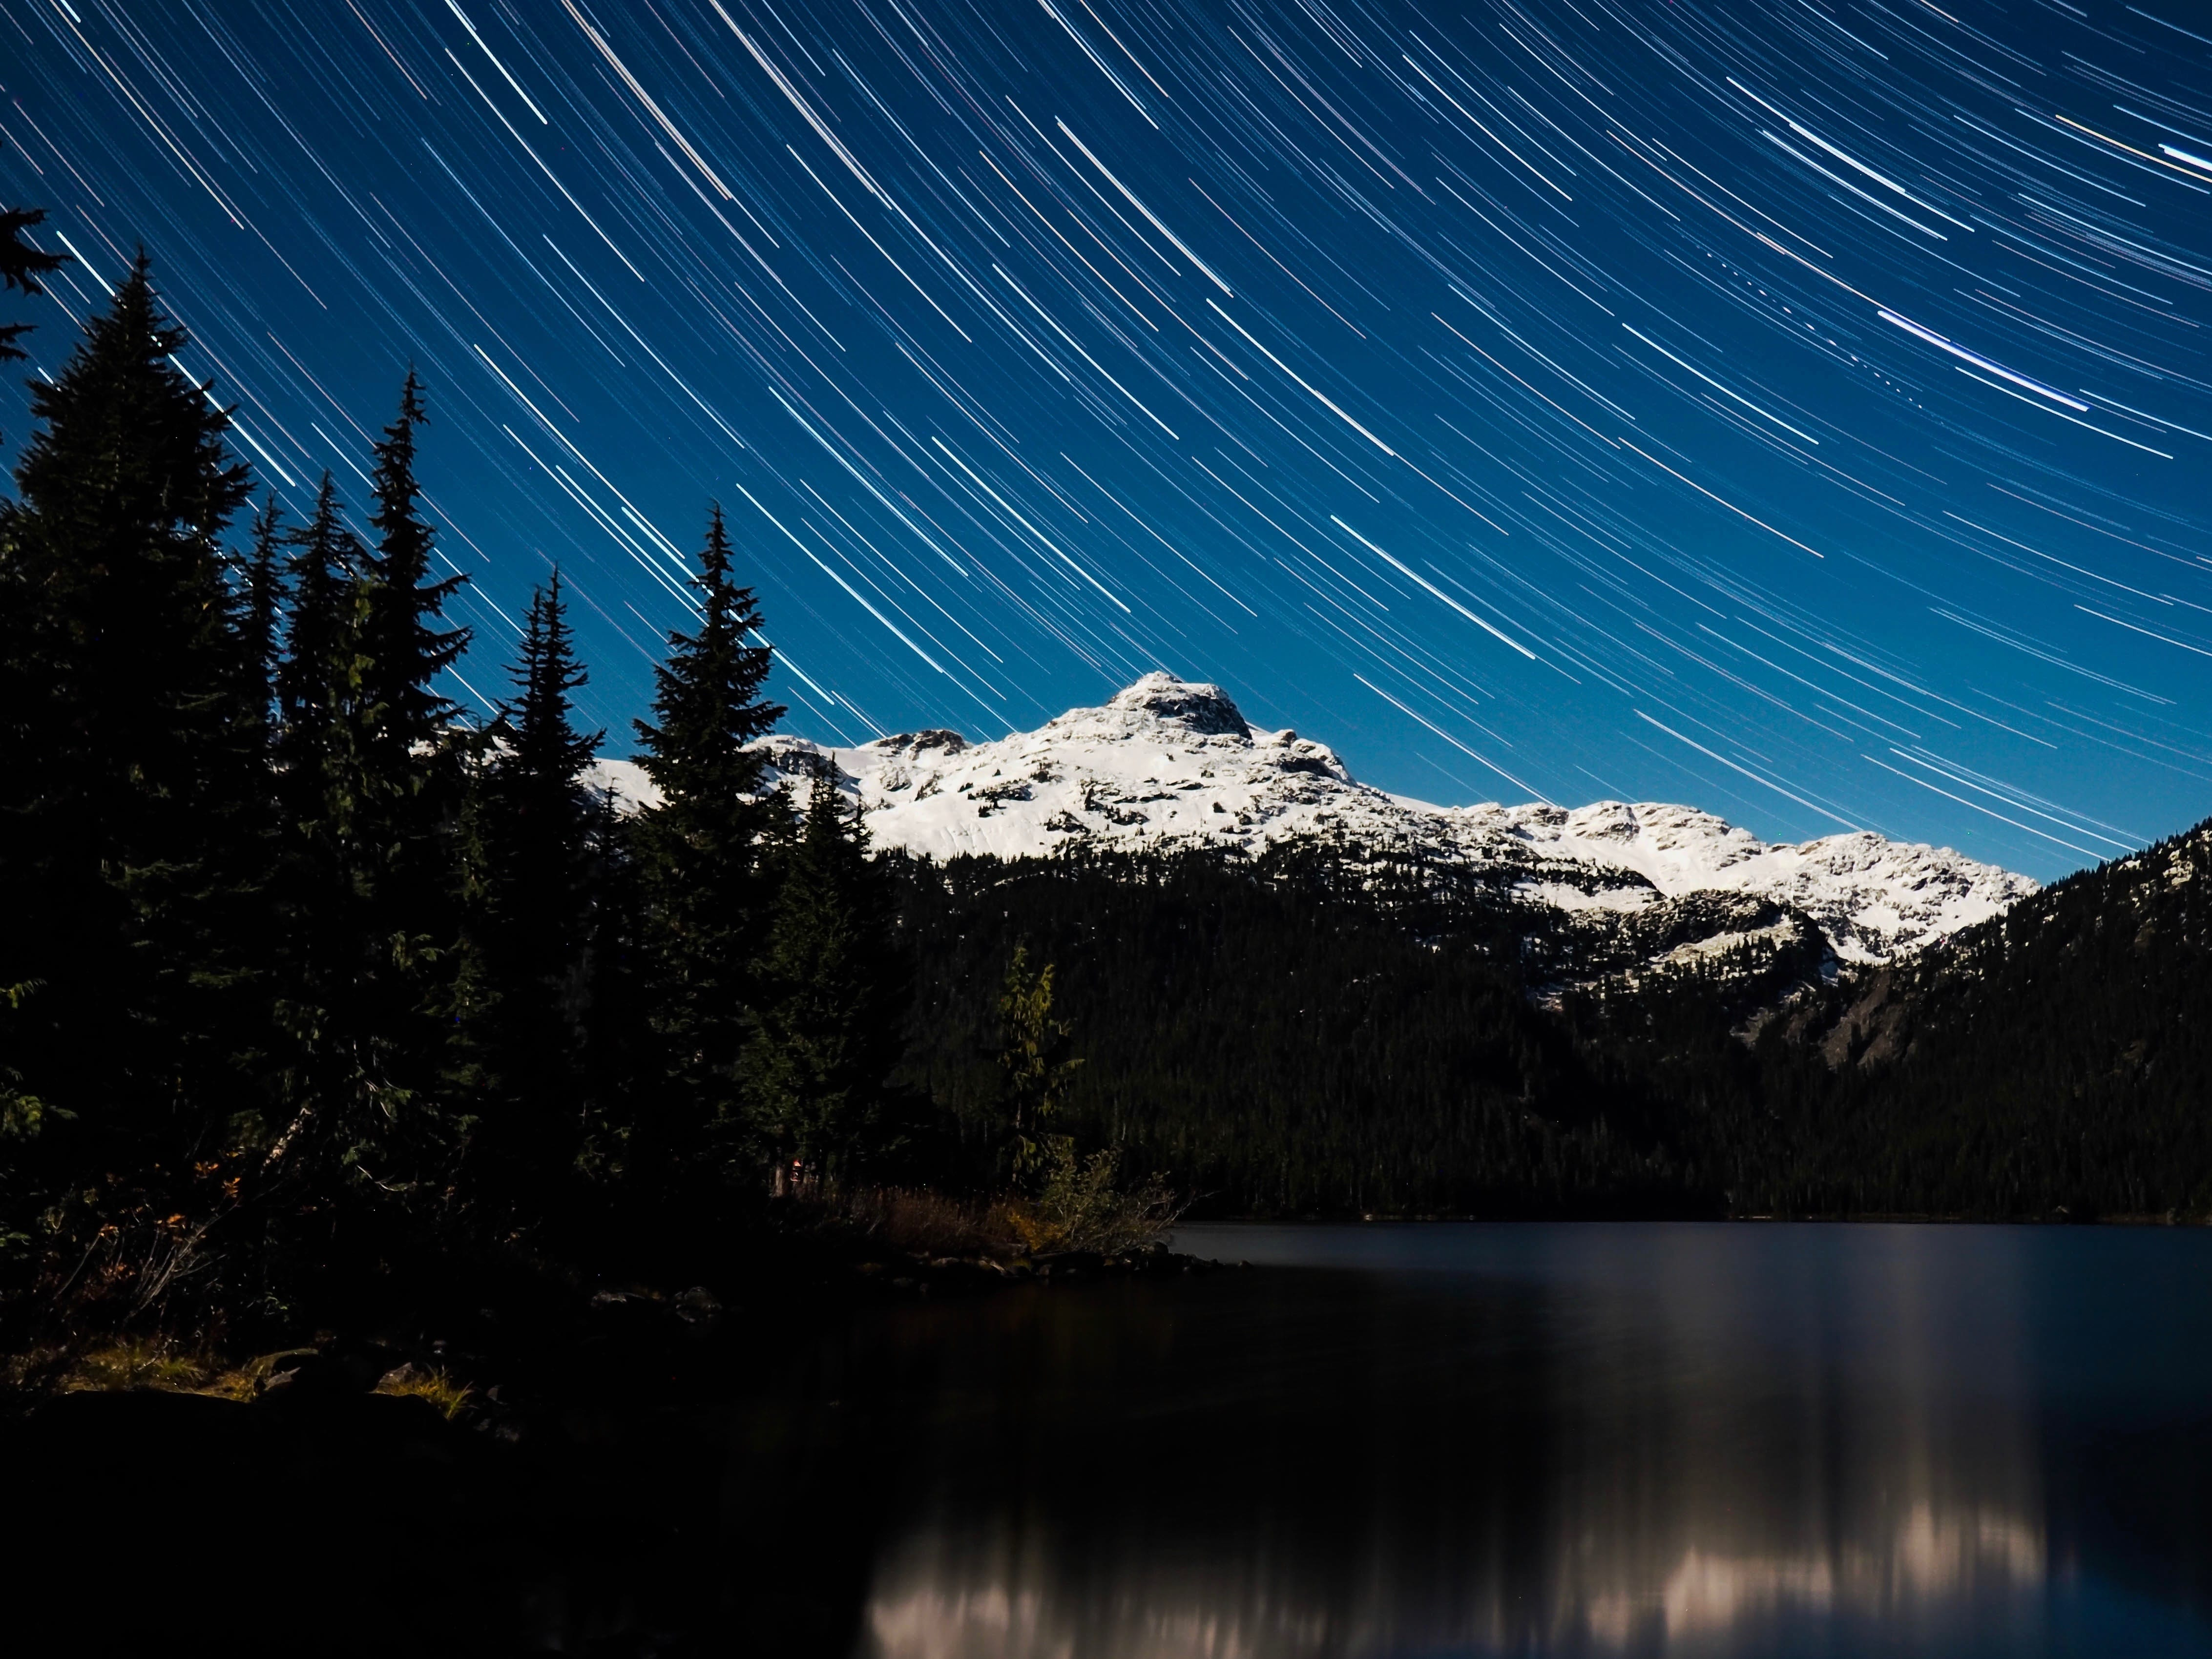 Learning to shoot star trails